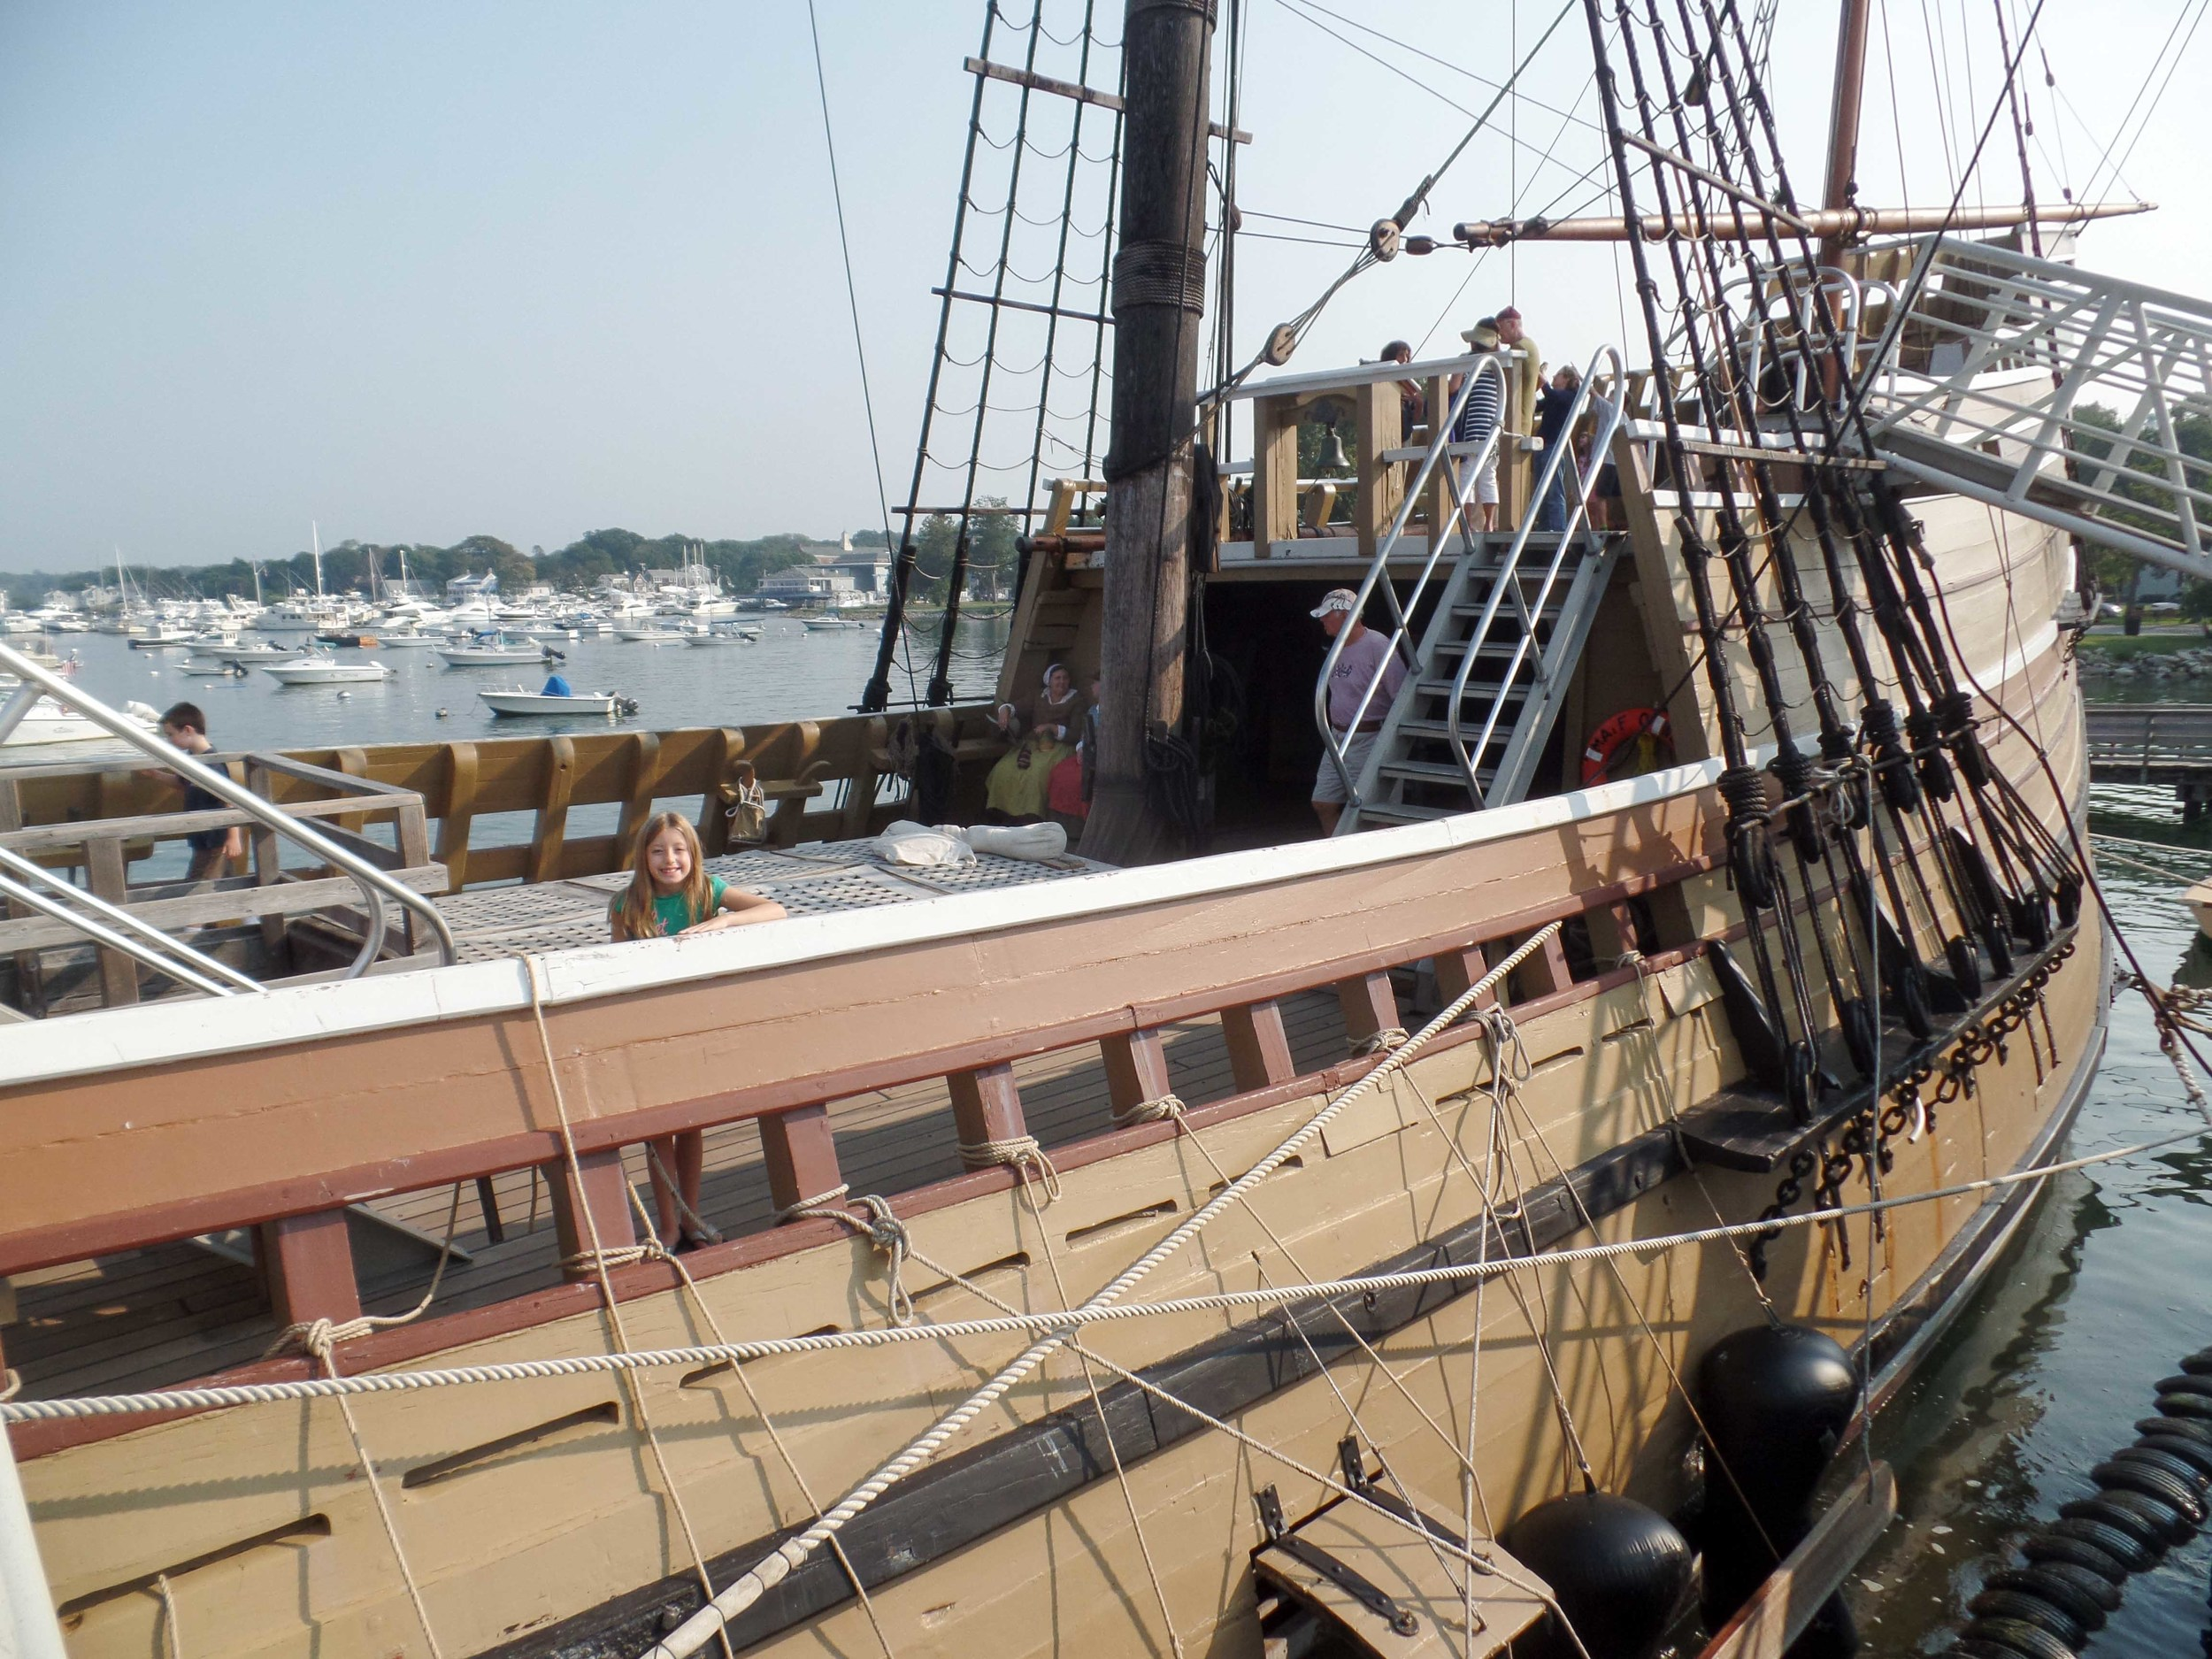 Only the crew, not the passengers, would have spent time up here. How fascinating to see such a faithful reproduction!